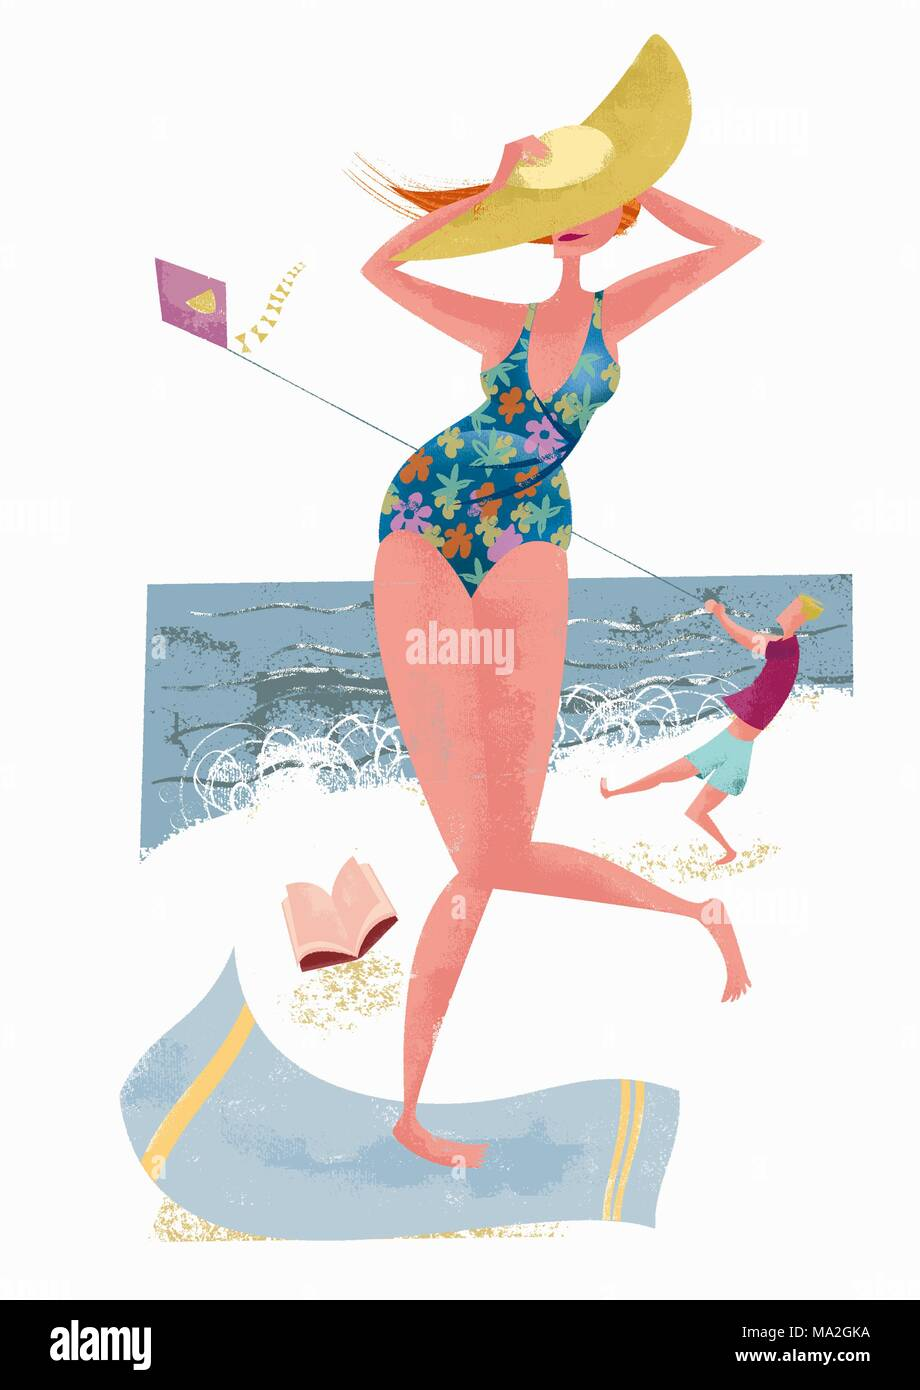 A woman on a beach holding onto her hat in the wind (illustration) - Stock Image